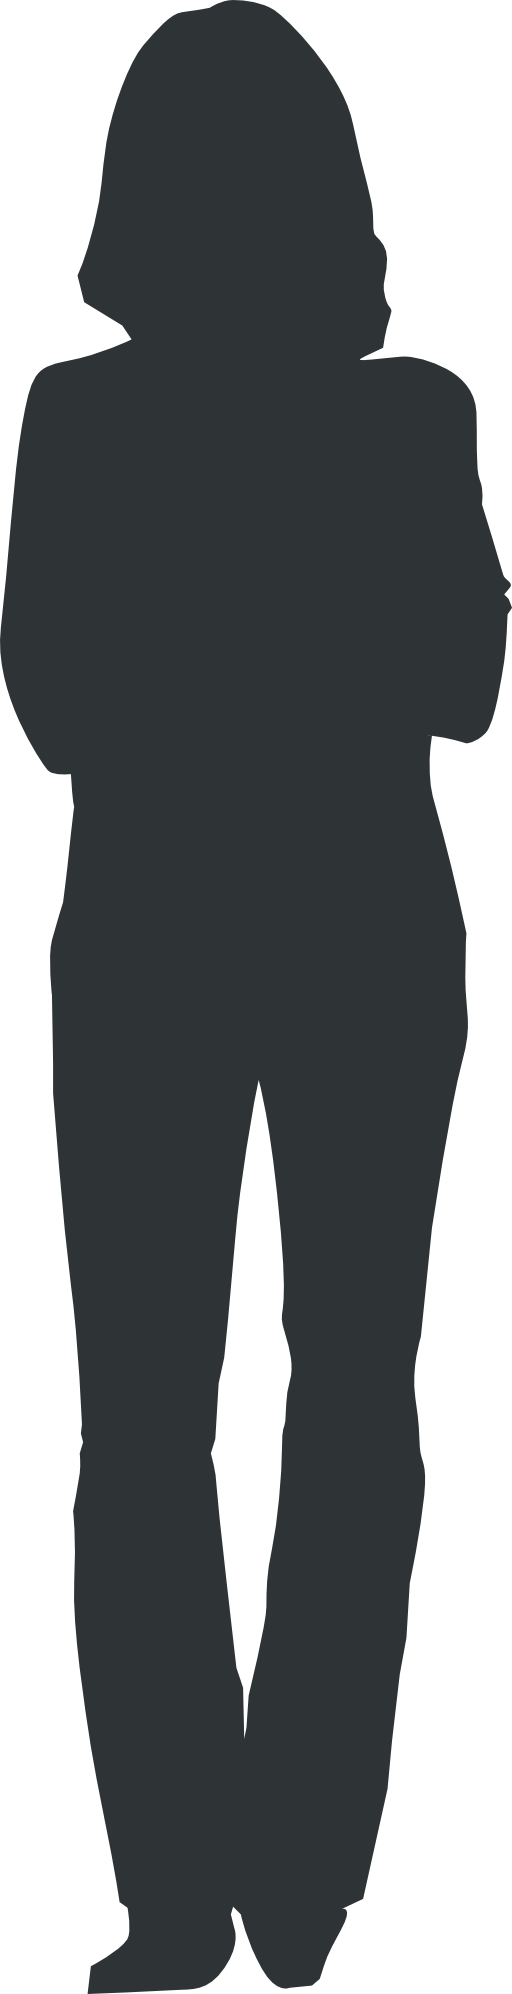 Person outline png. Clipart i royalty free